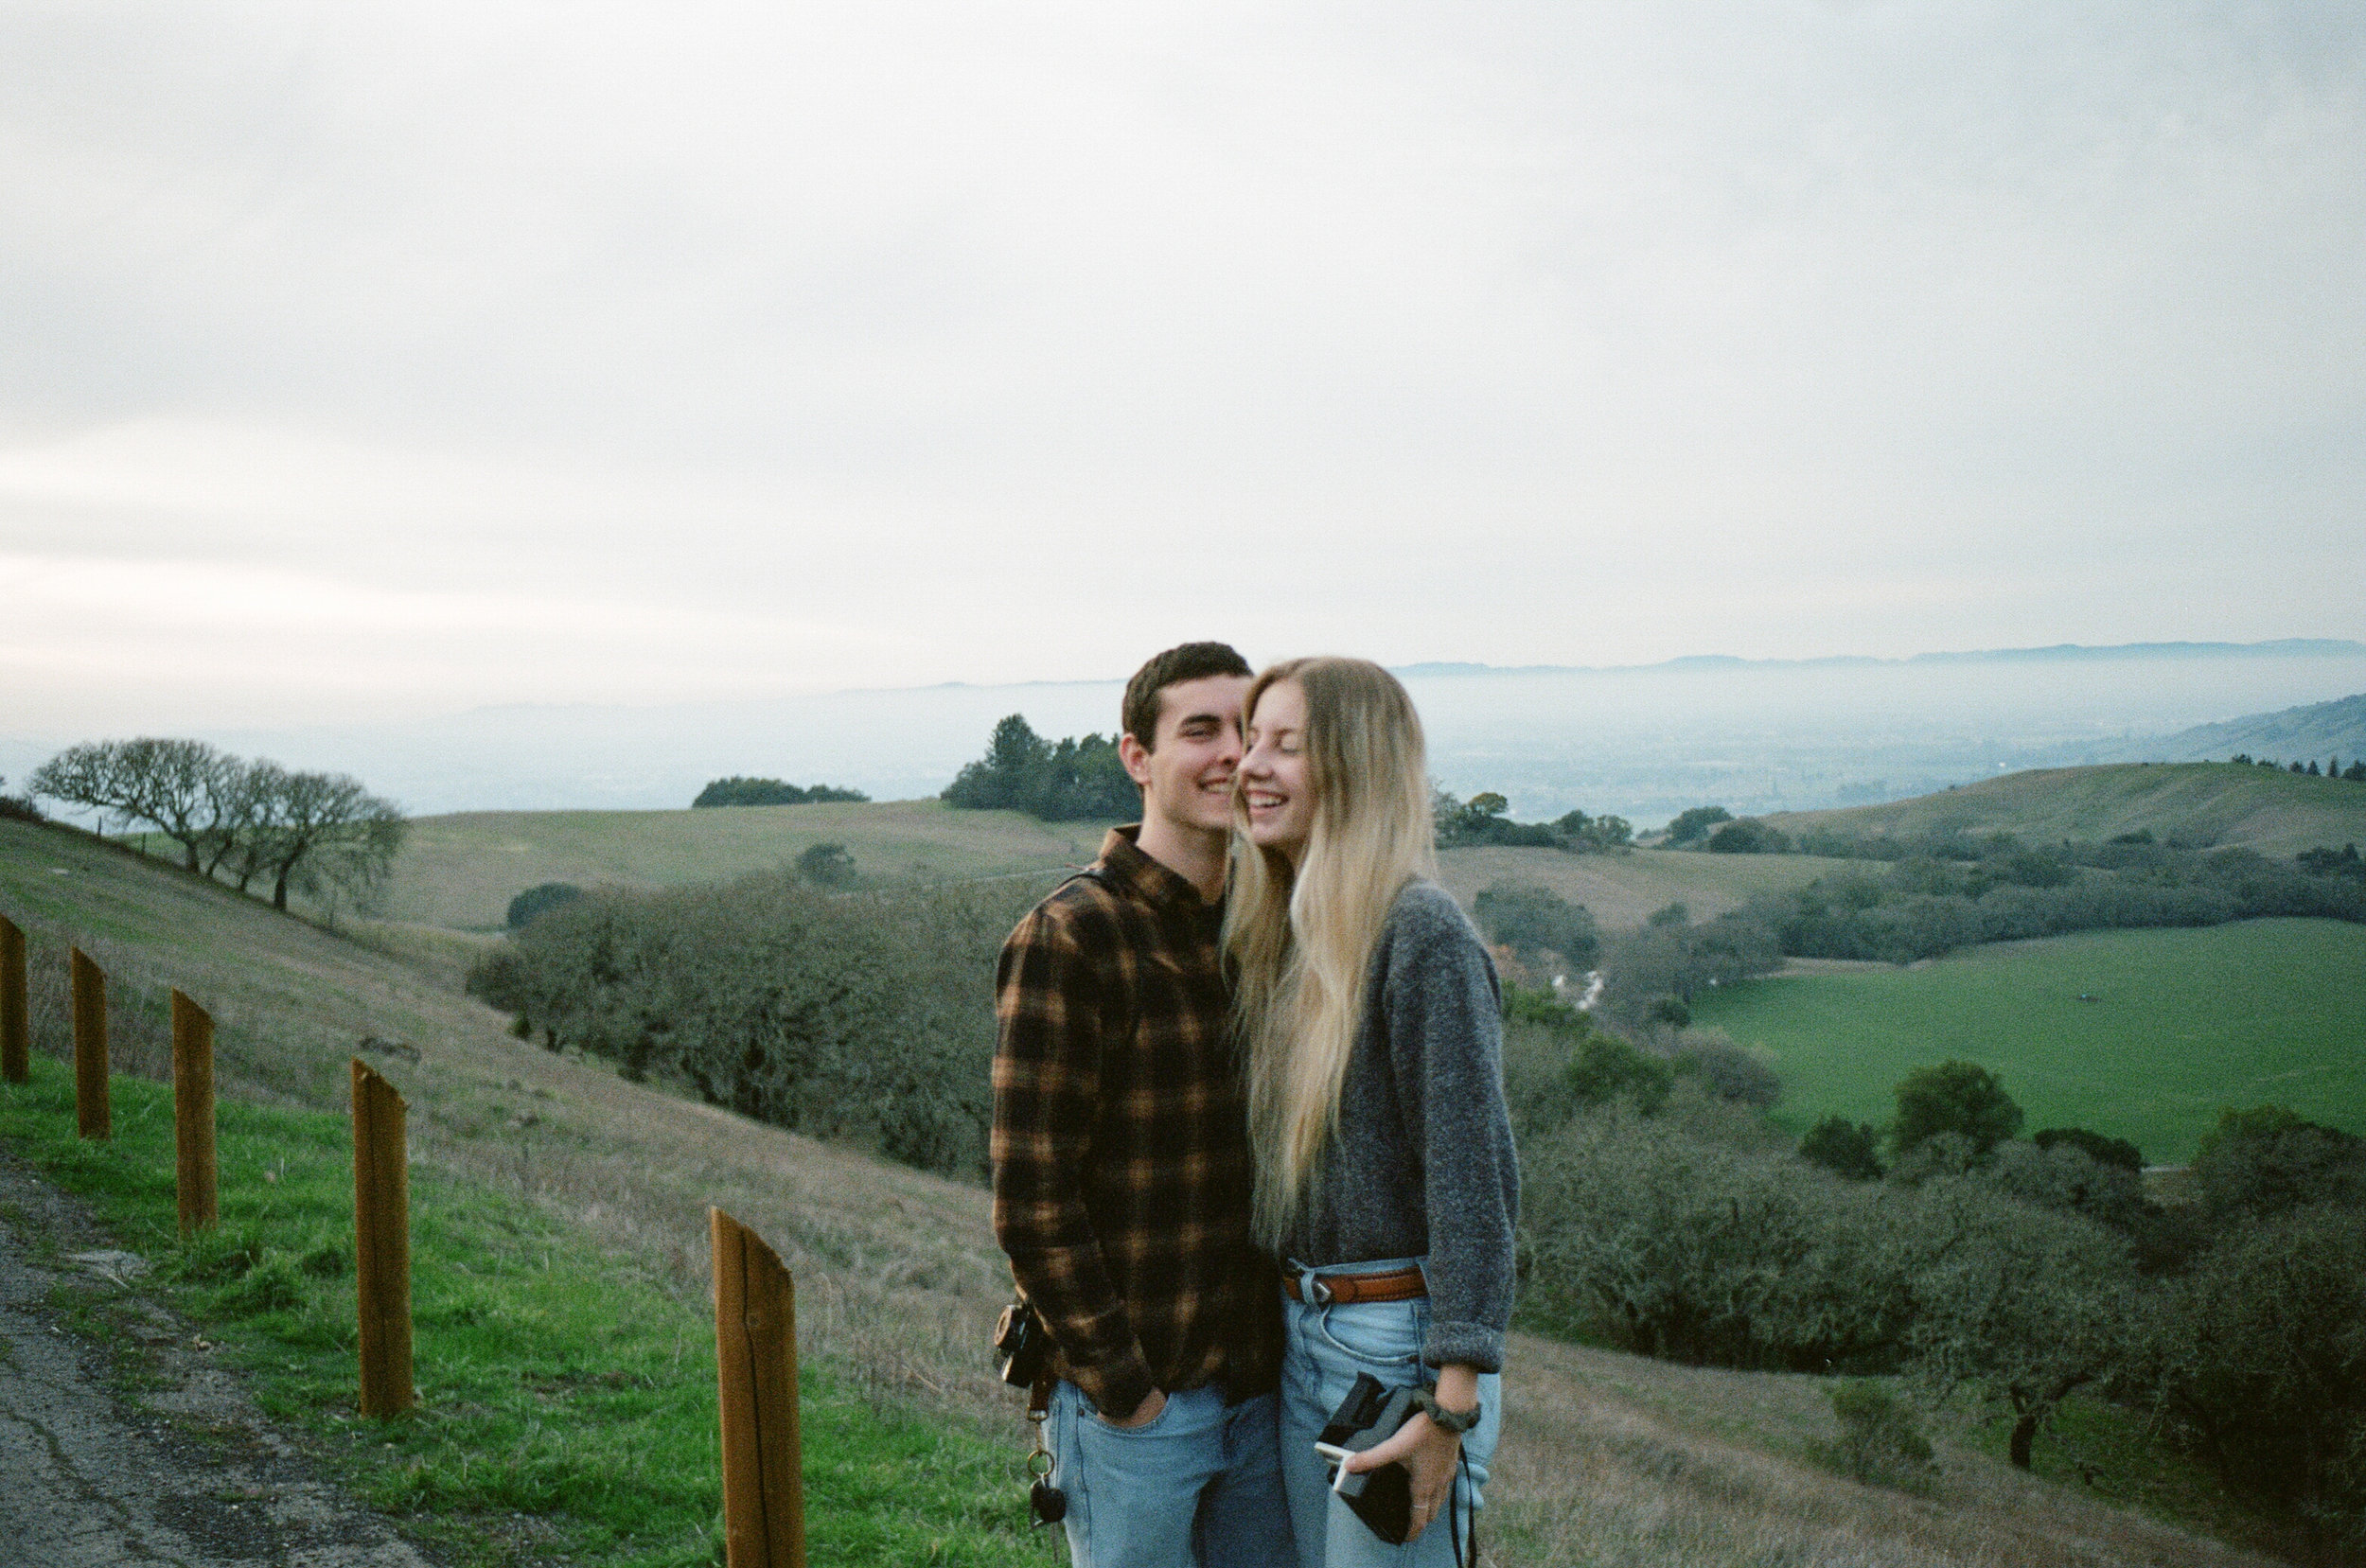 hannah&cole-california-film-jan2019-peytoncurry-000098780033.jpg